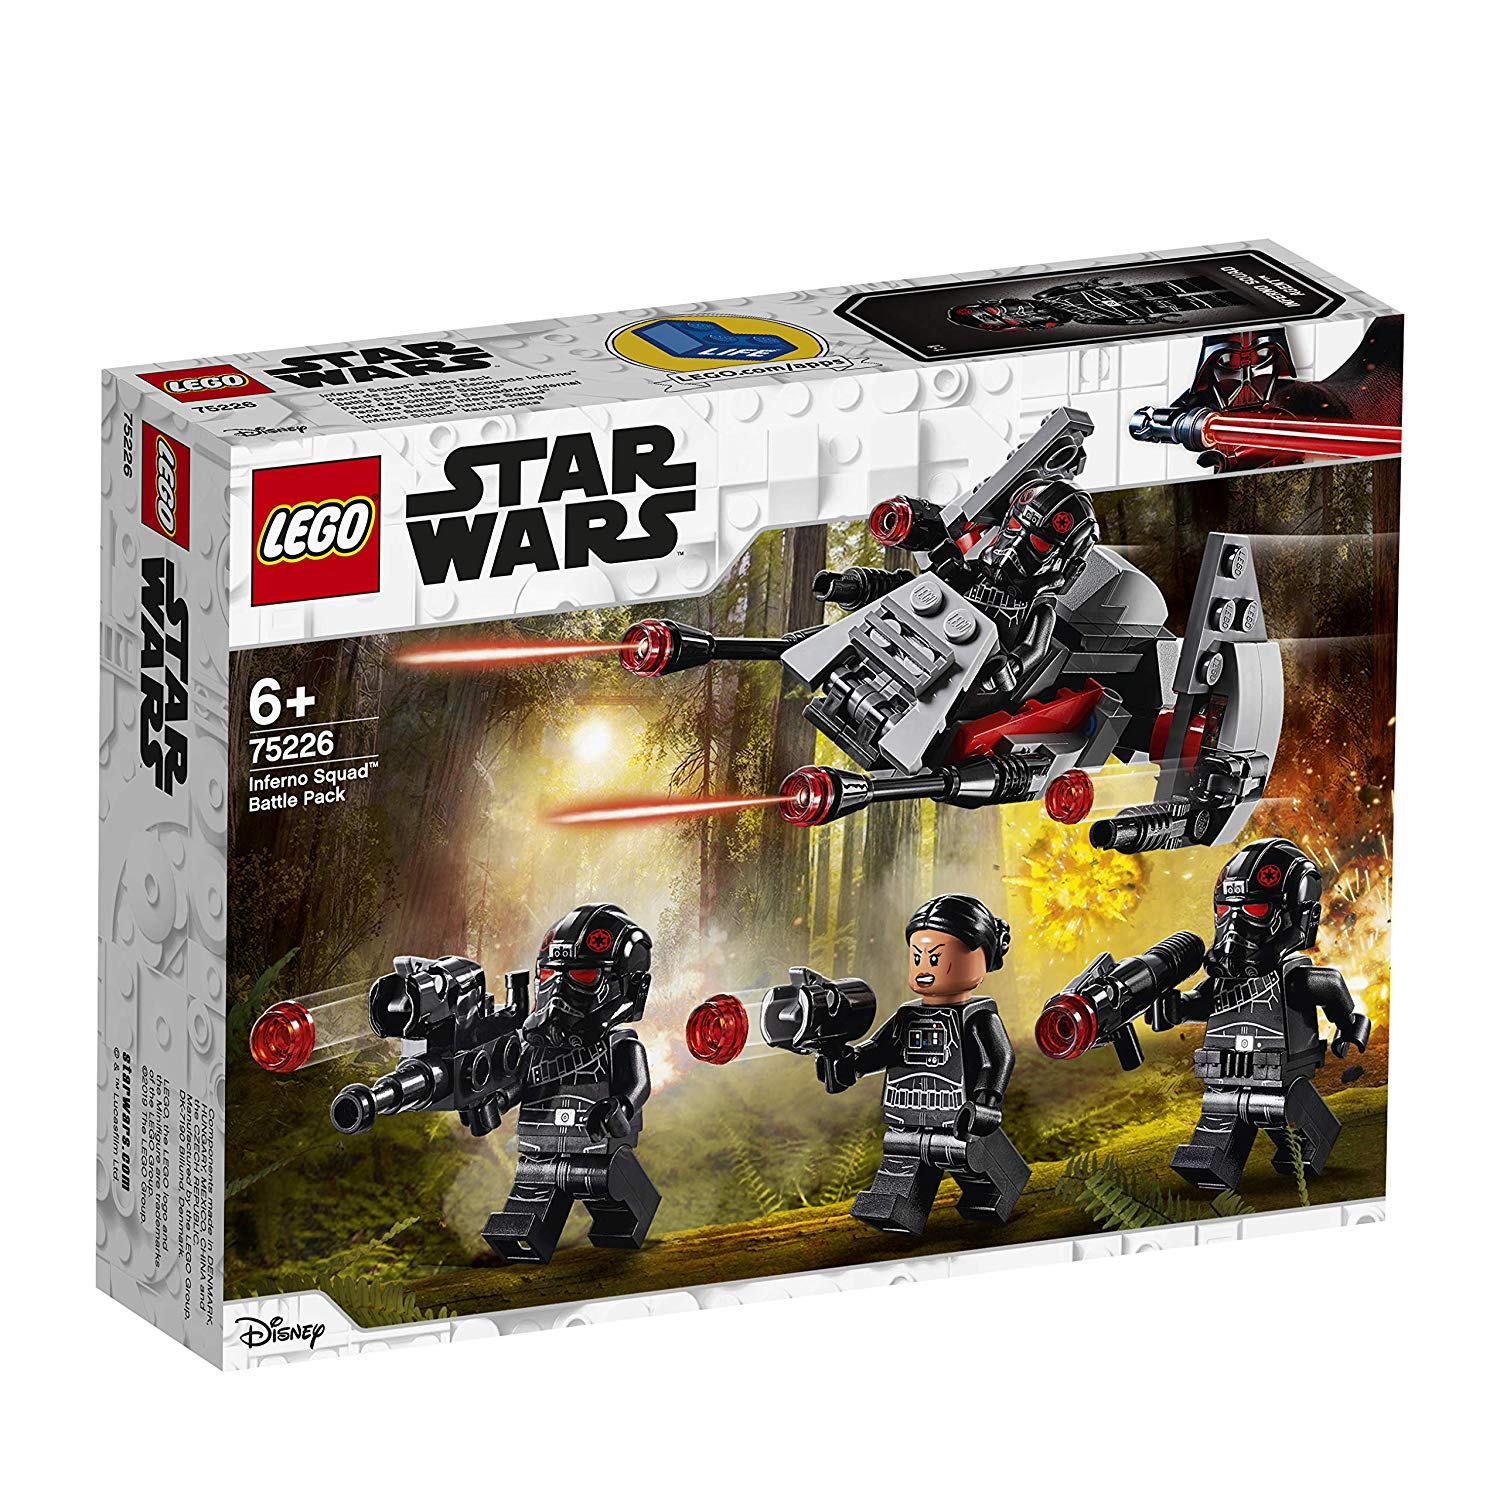 75226 Battle Pack Inferno Squad Lego Star Wars